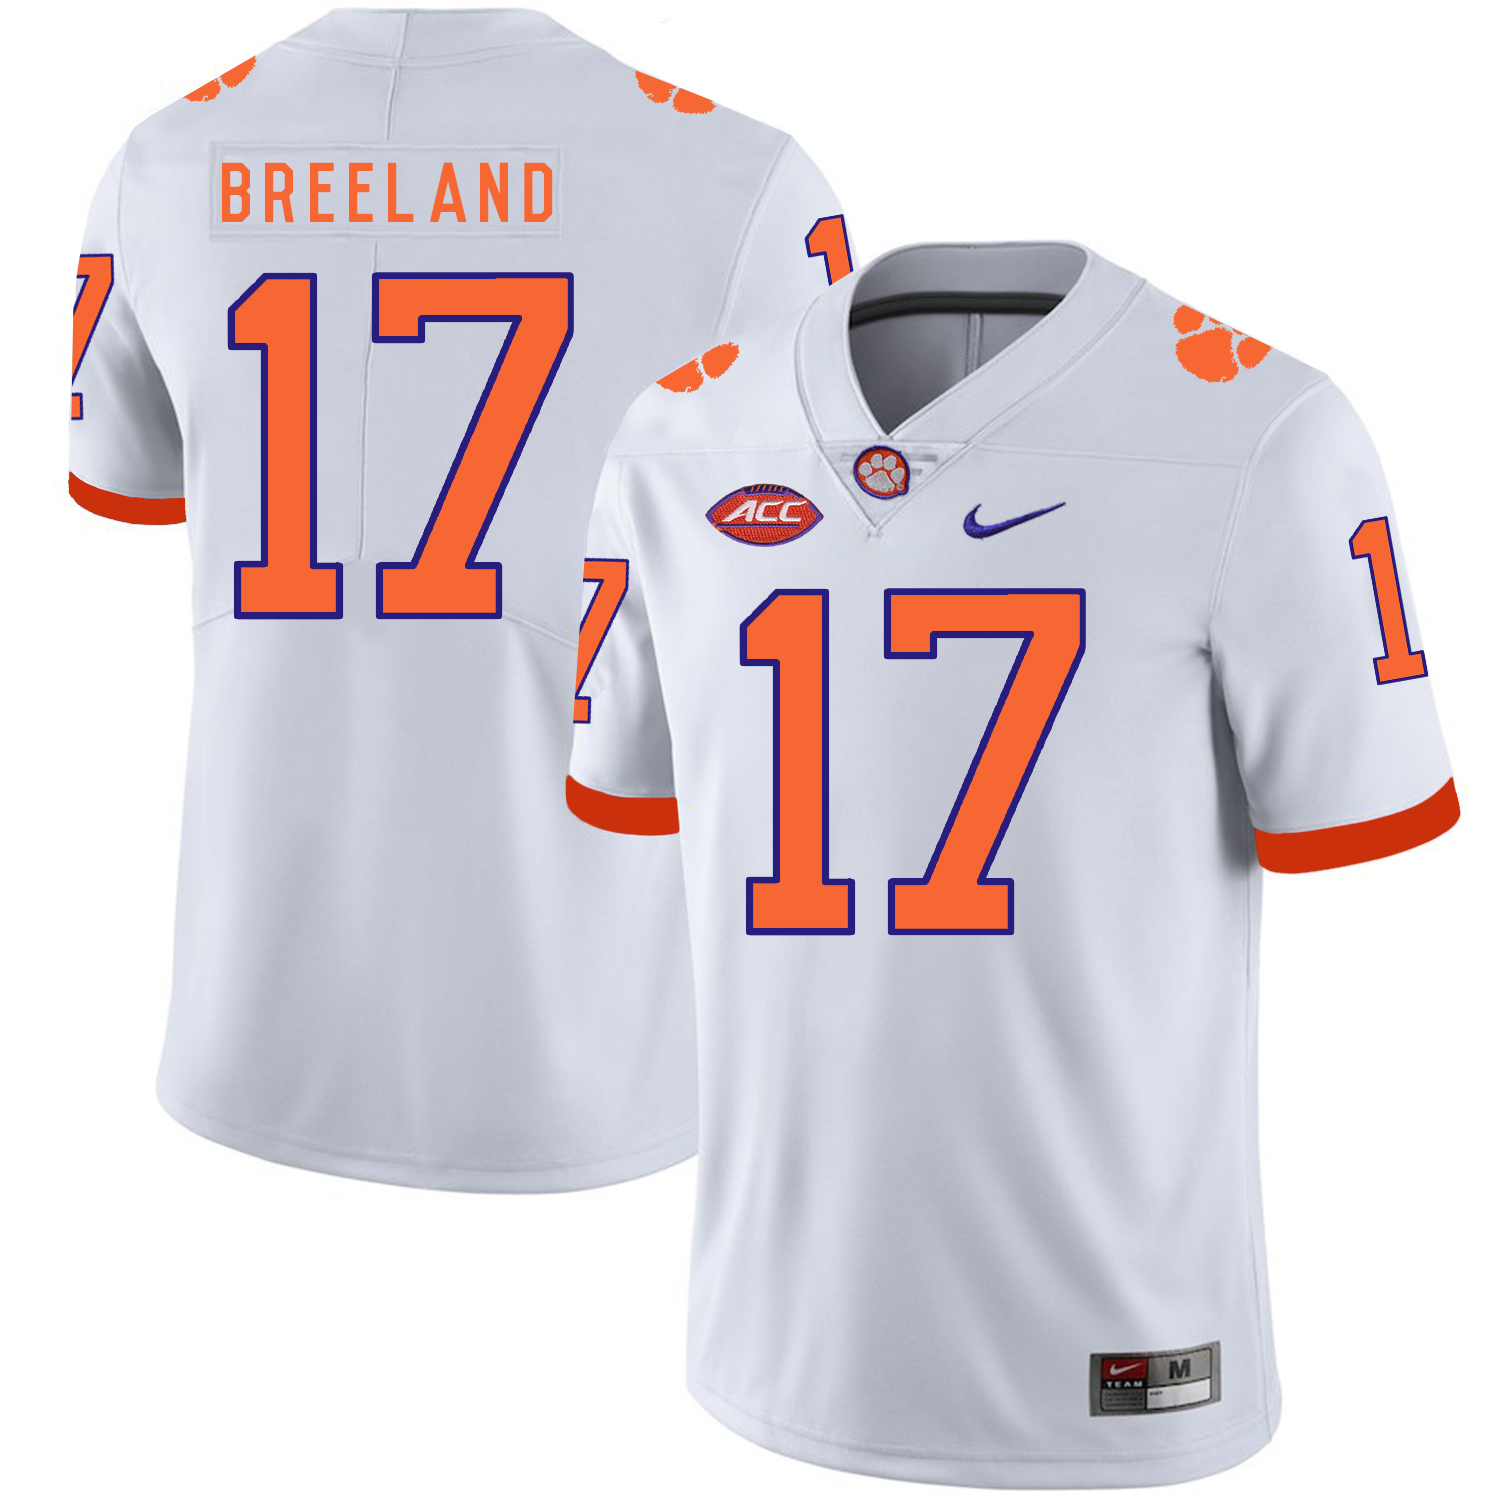 Clemson Tigers 17 Bashaud Breeland White Nike College Football Jersey